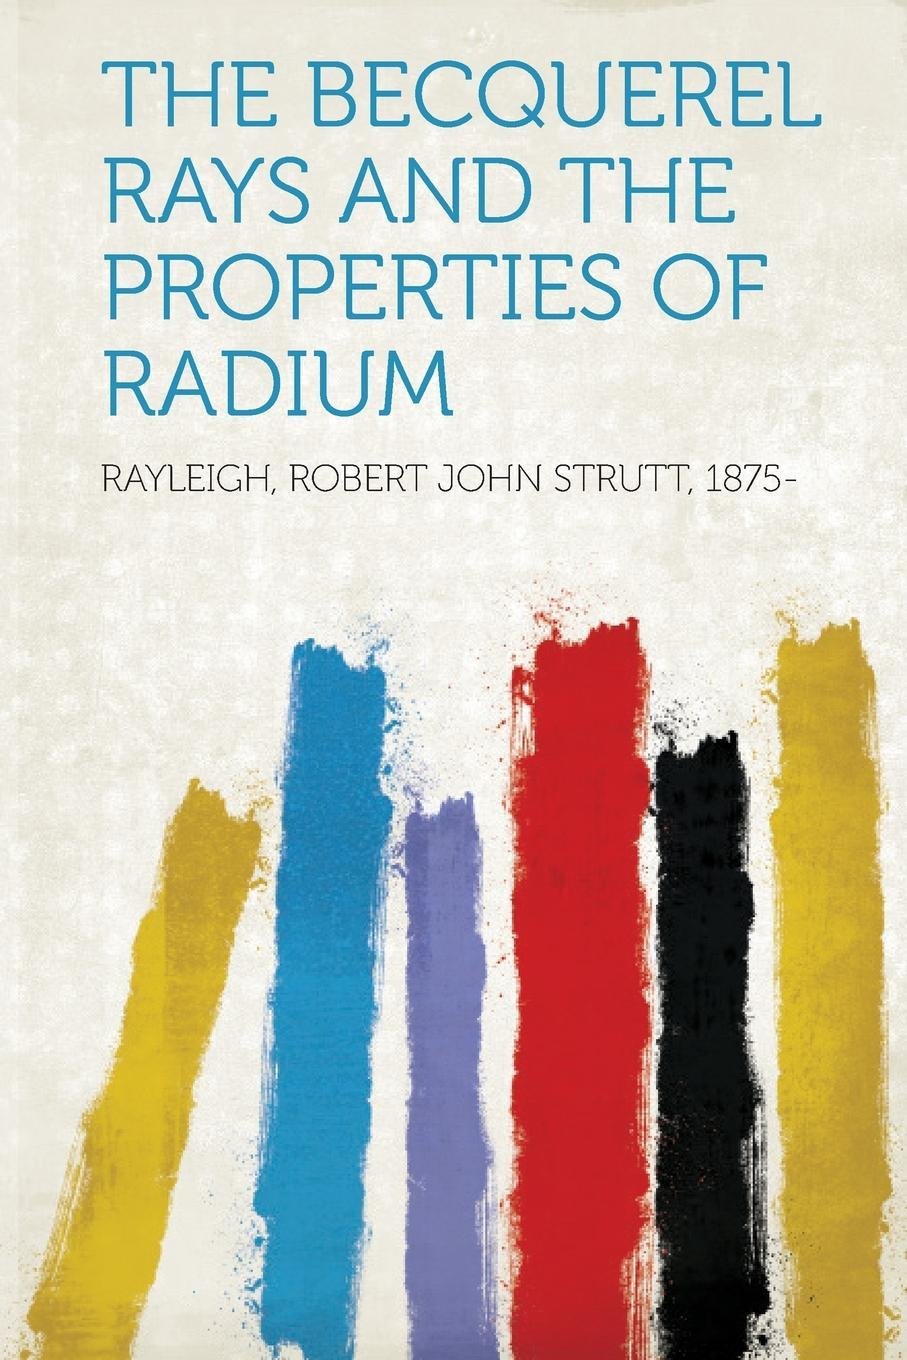 The Becquerel Rays and the Properties of Radium pdf